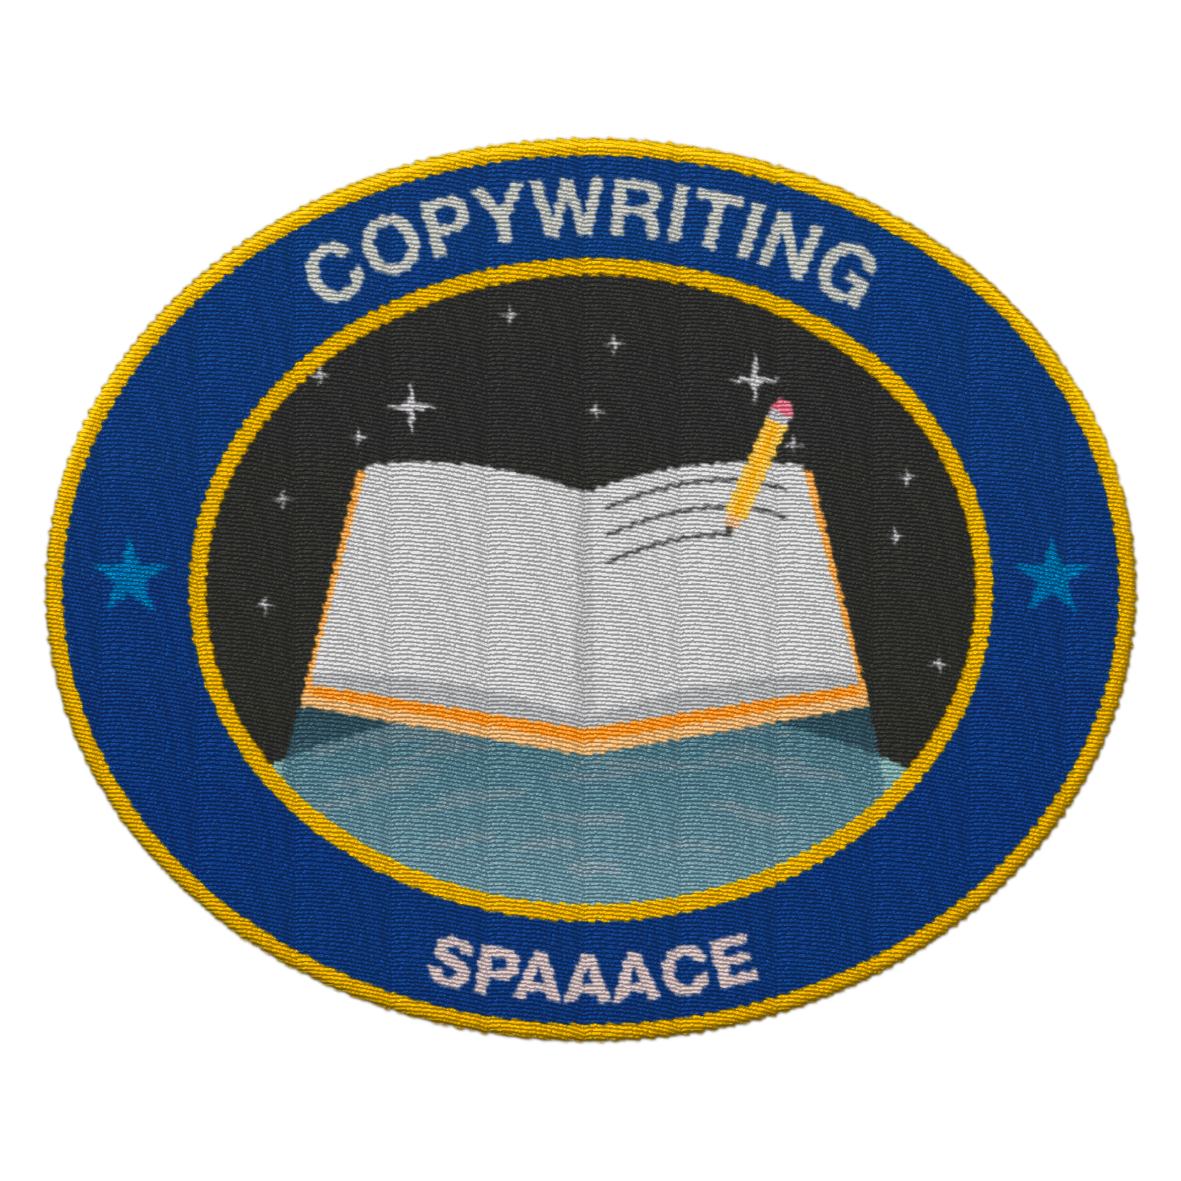 Spaaace - patch copywriting